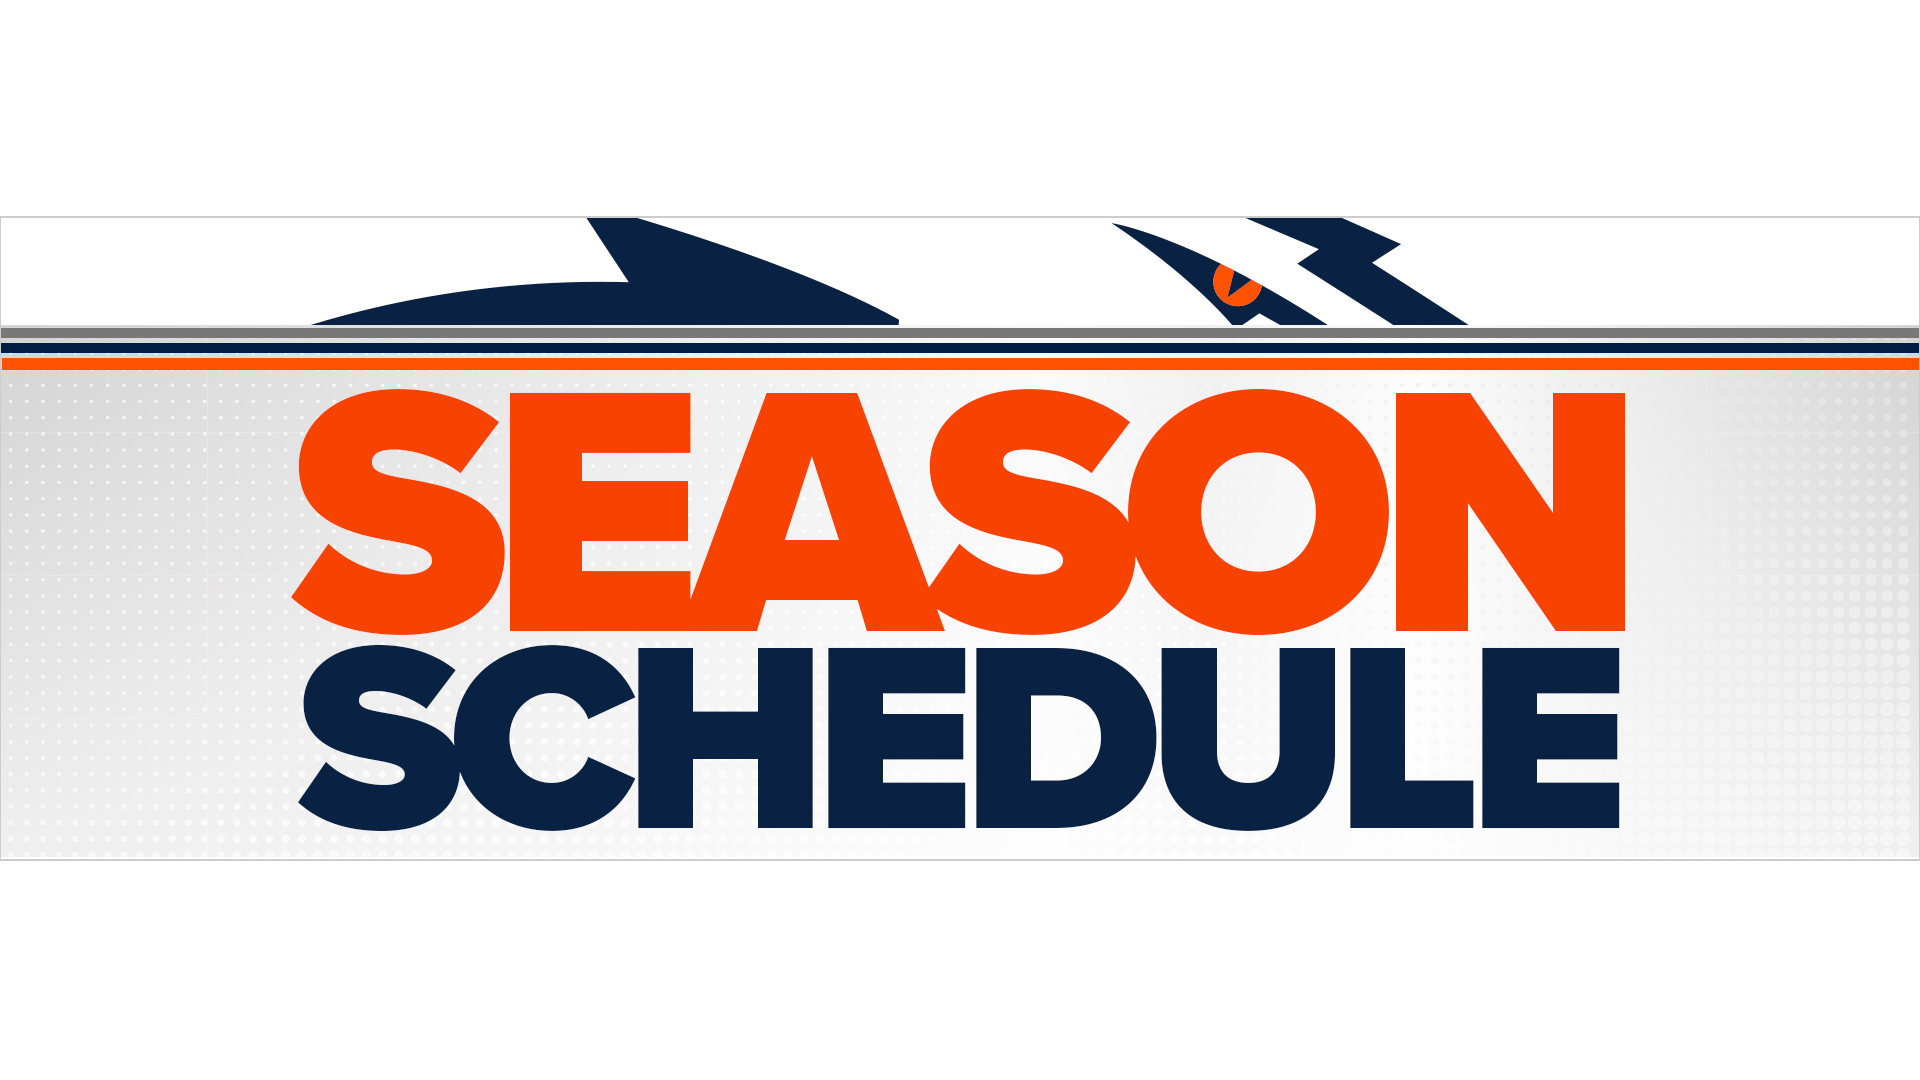 photograph about Denver Broncos Schedule Printable titled Denver Broncos Plan Denver Broncos